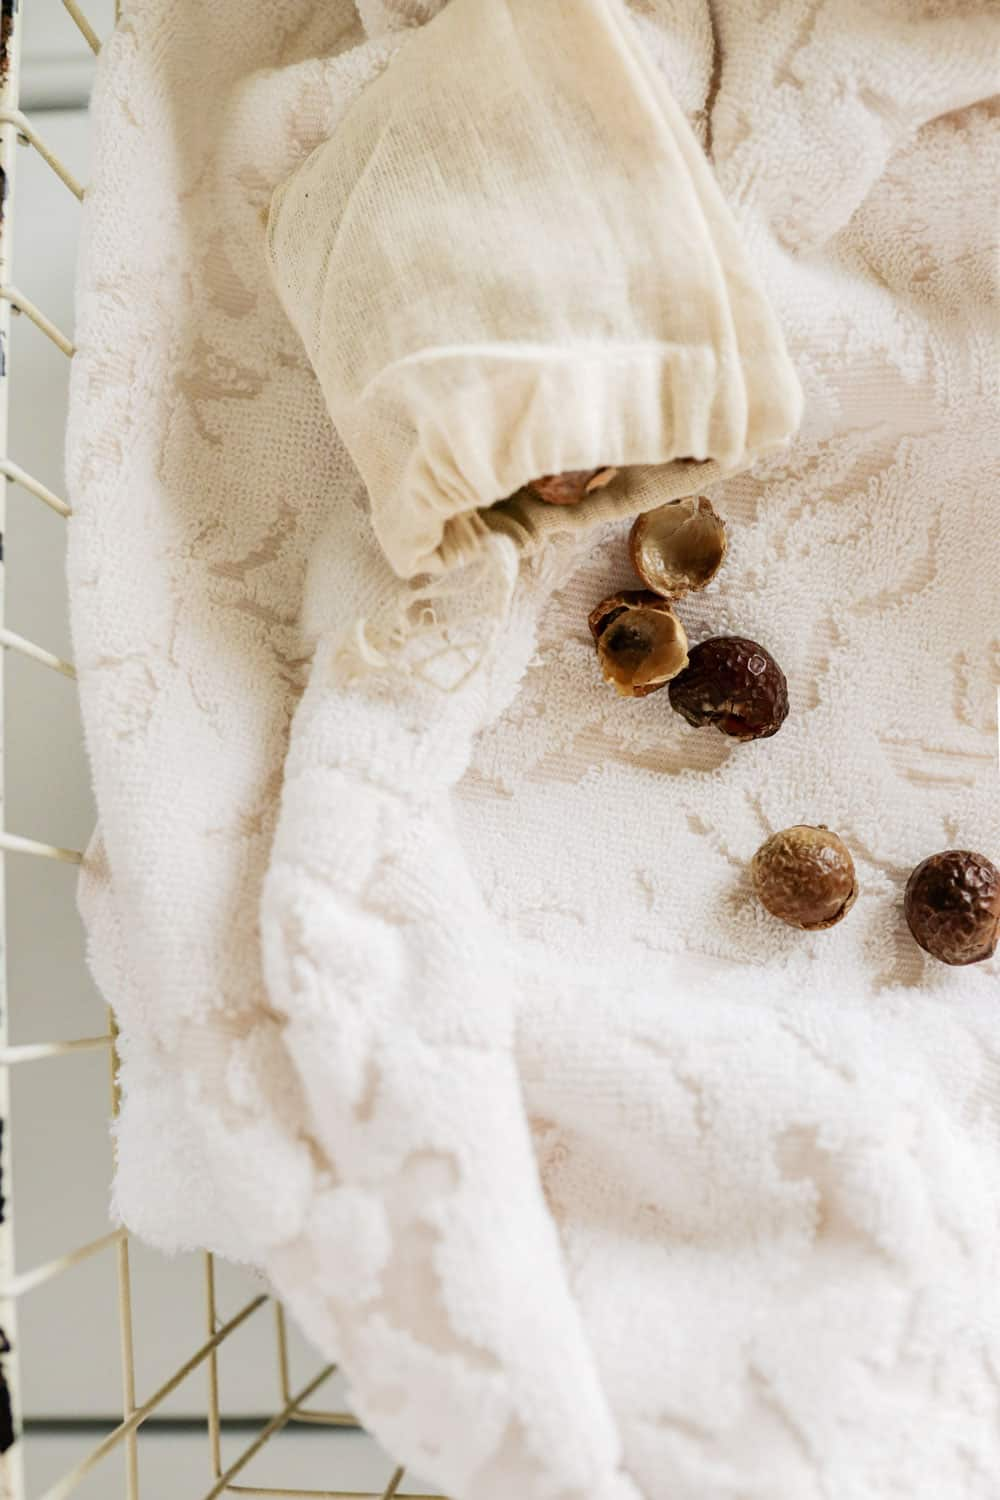 How to use soap nuts for green laundry